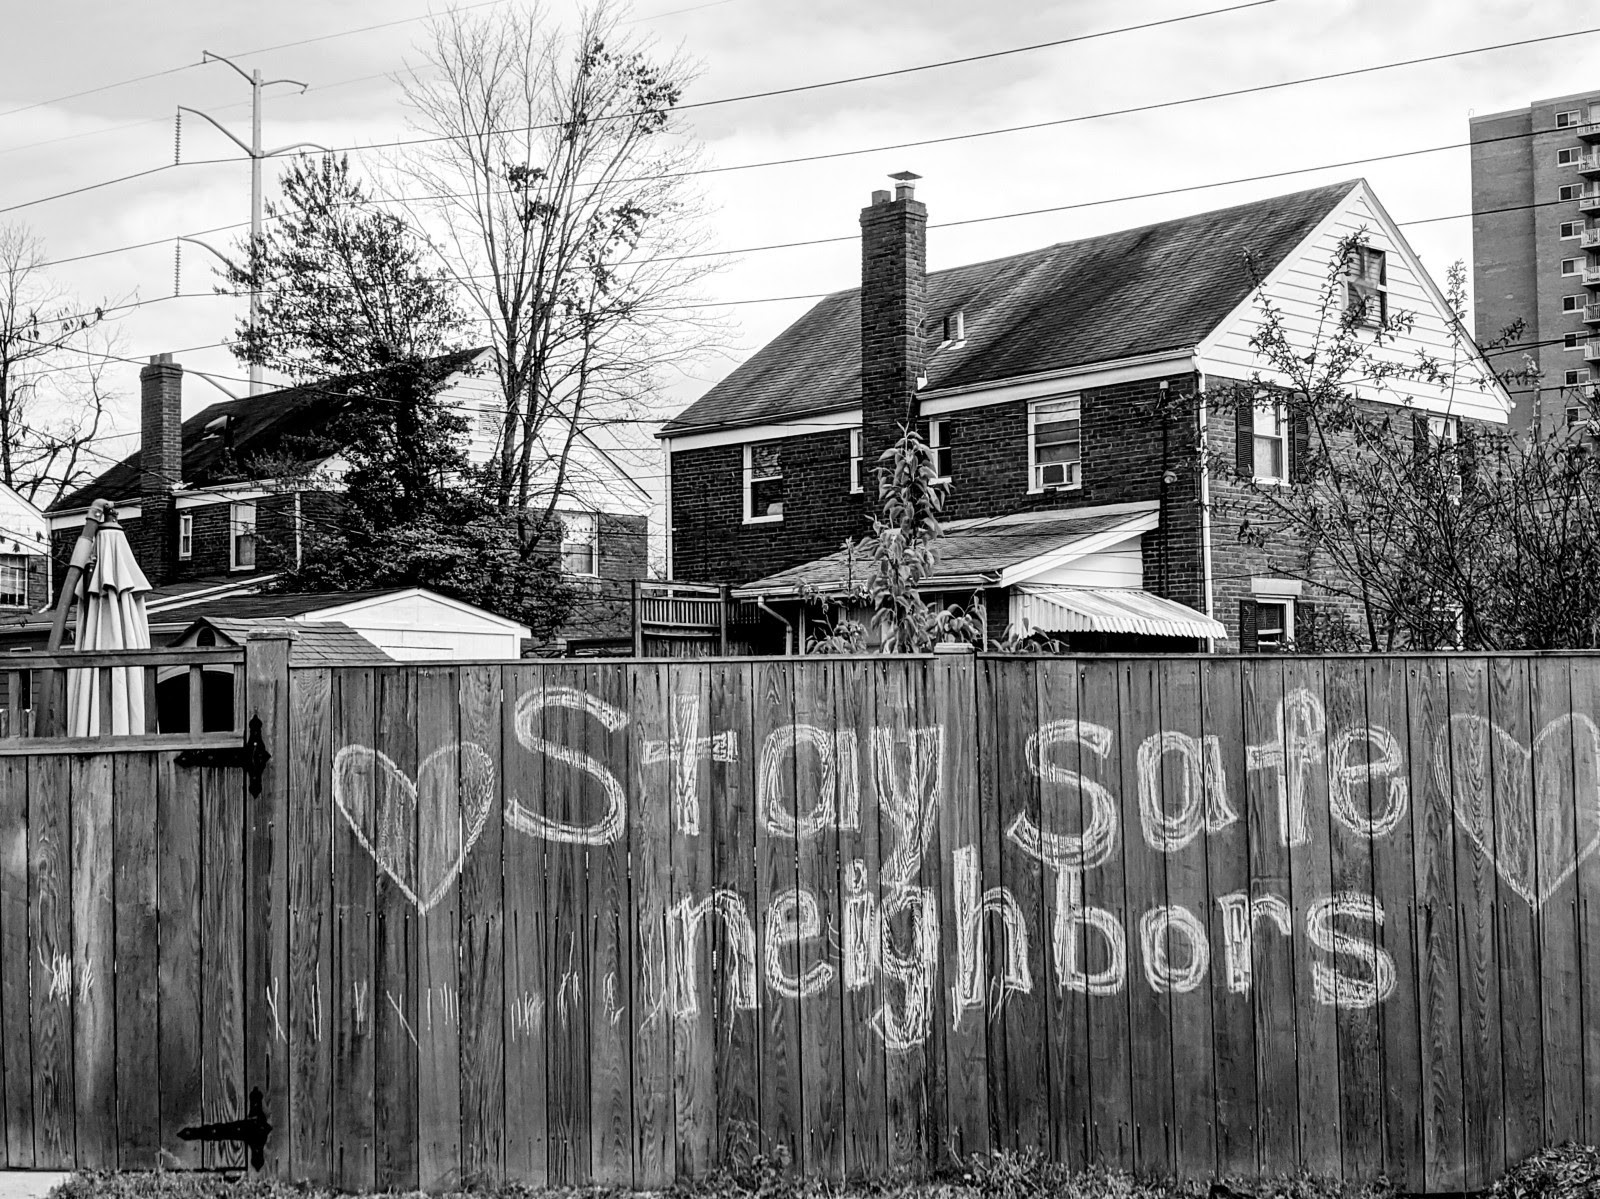 """Fence with chalk drawing that says """"stay safe neighbors"""". Houses with chimneys are seen in the background."""